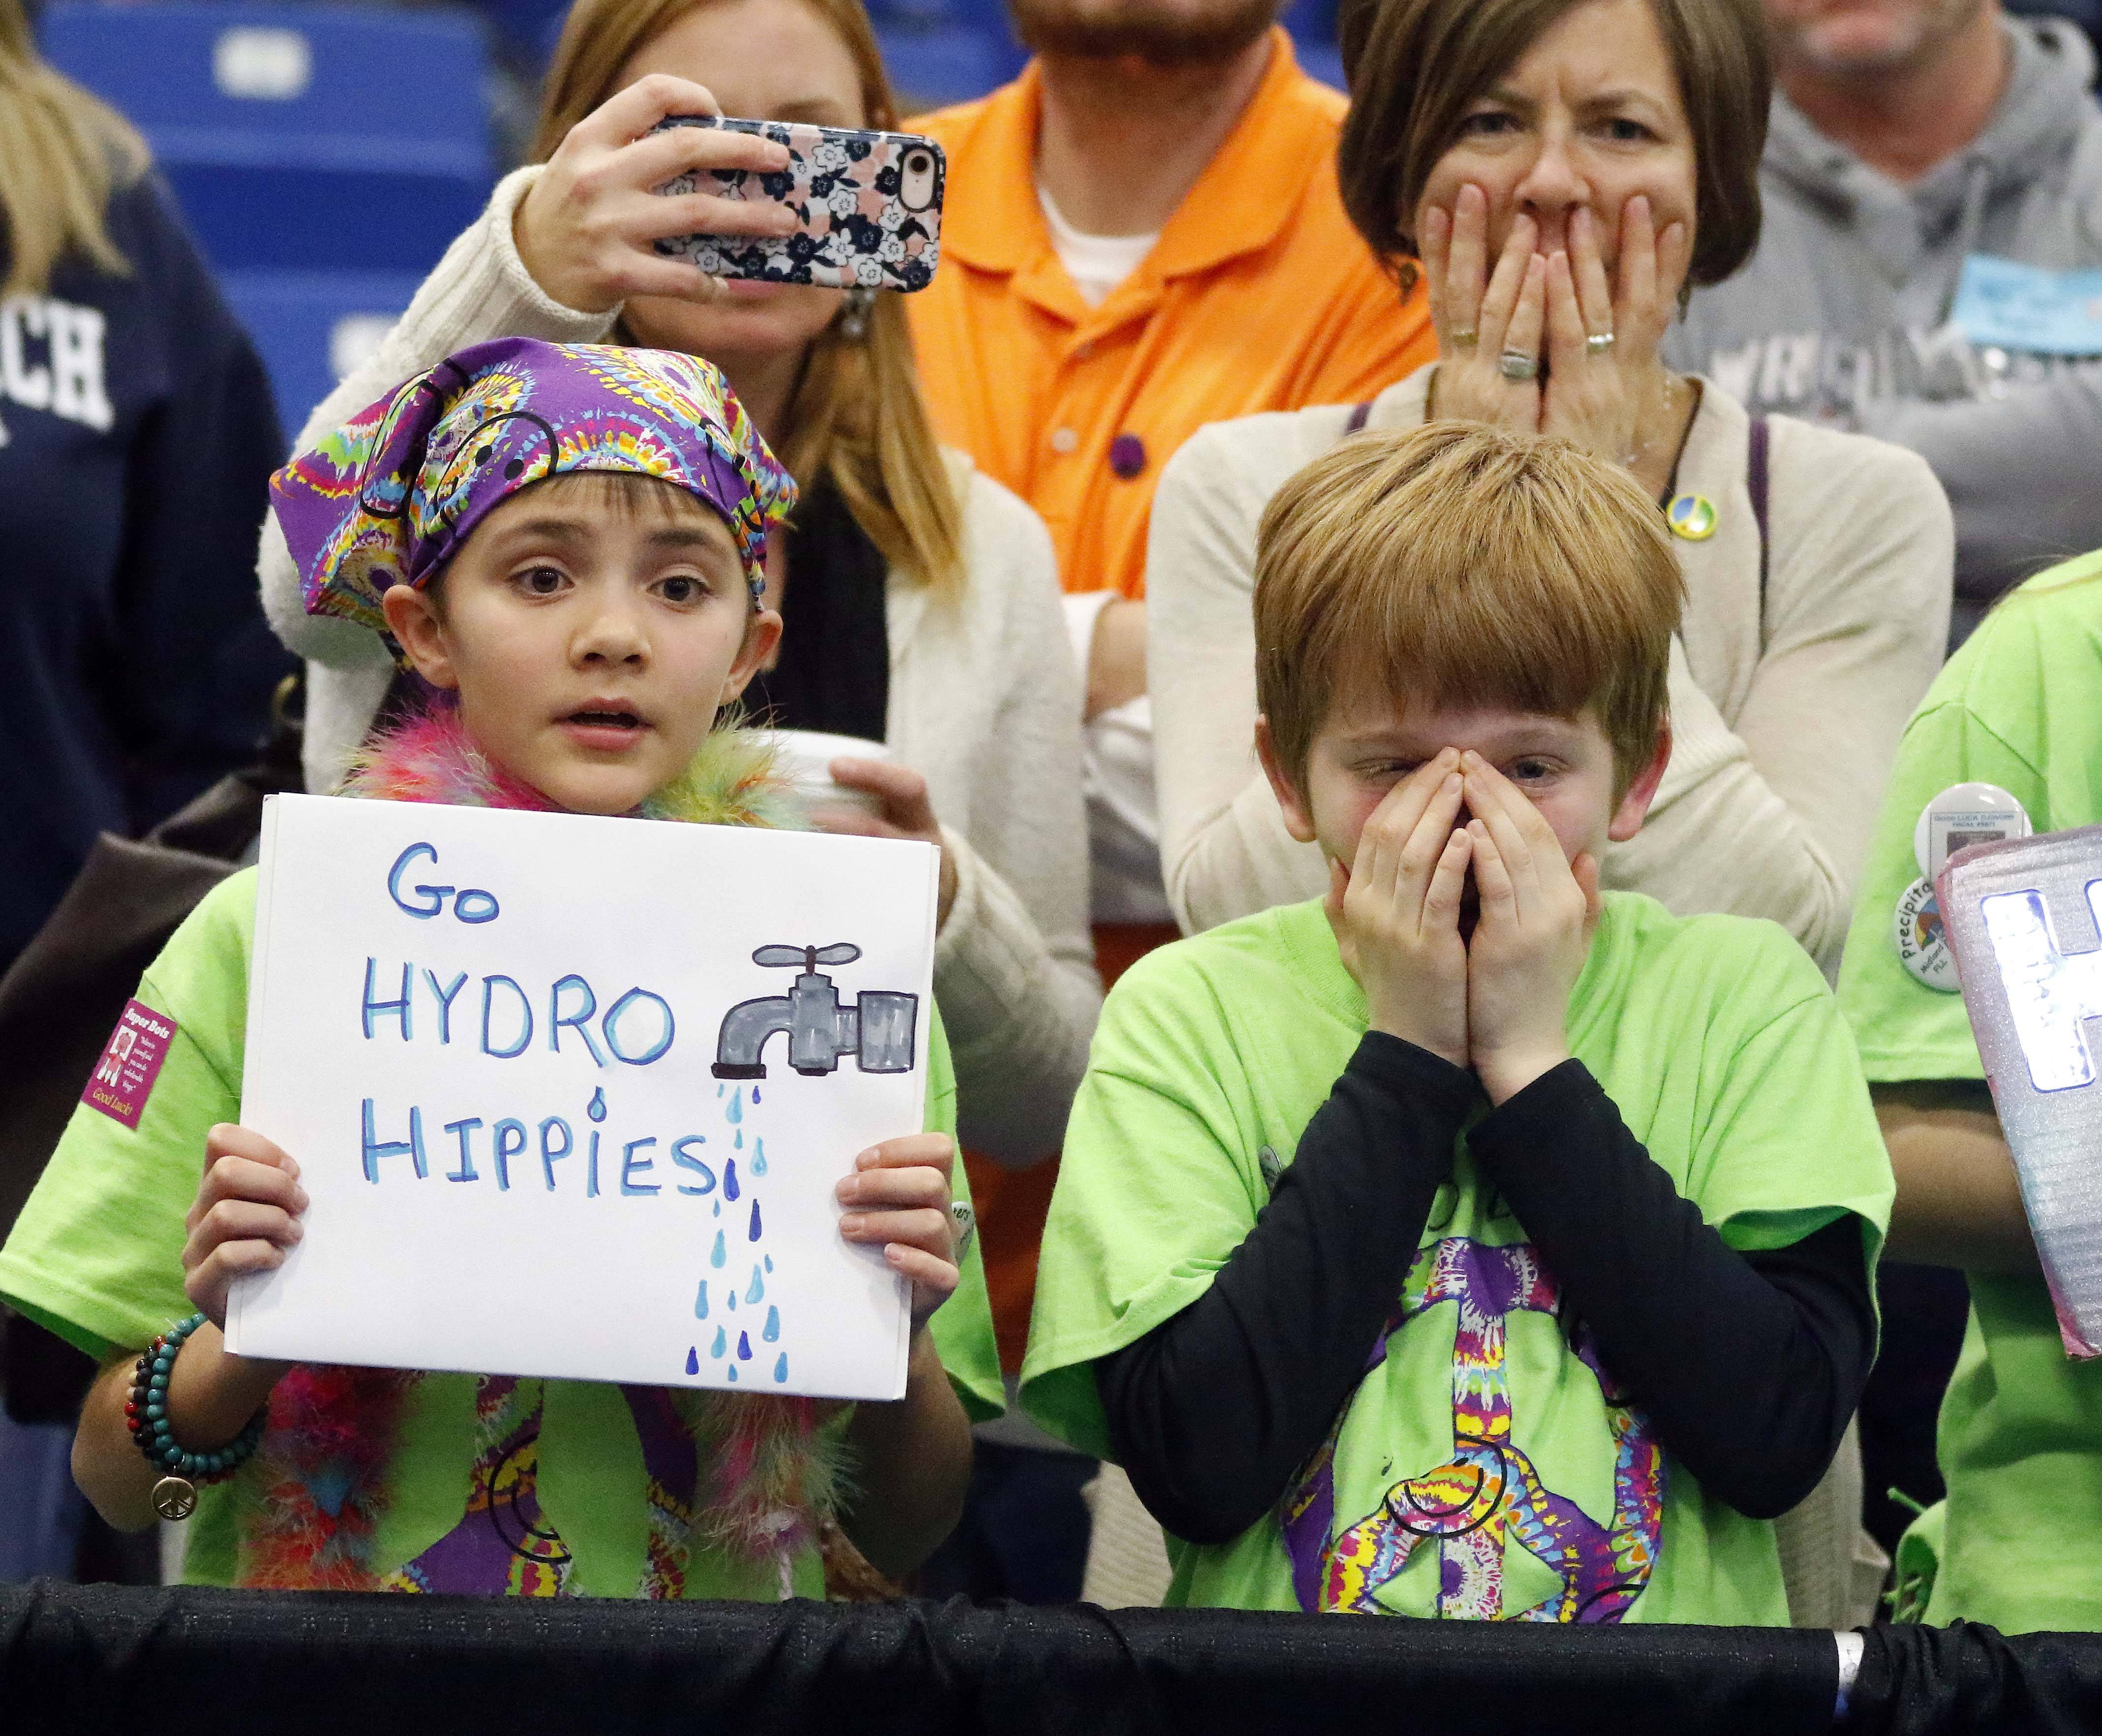 Malaika Parpart and William Madigan, both 11 and from Woodstock, cheer on their team, the Hydro Hippies, Saturday during the First Lego League Tournament at Elgin Community College where 50 teams from across the state competed.